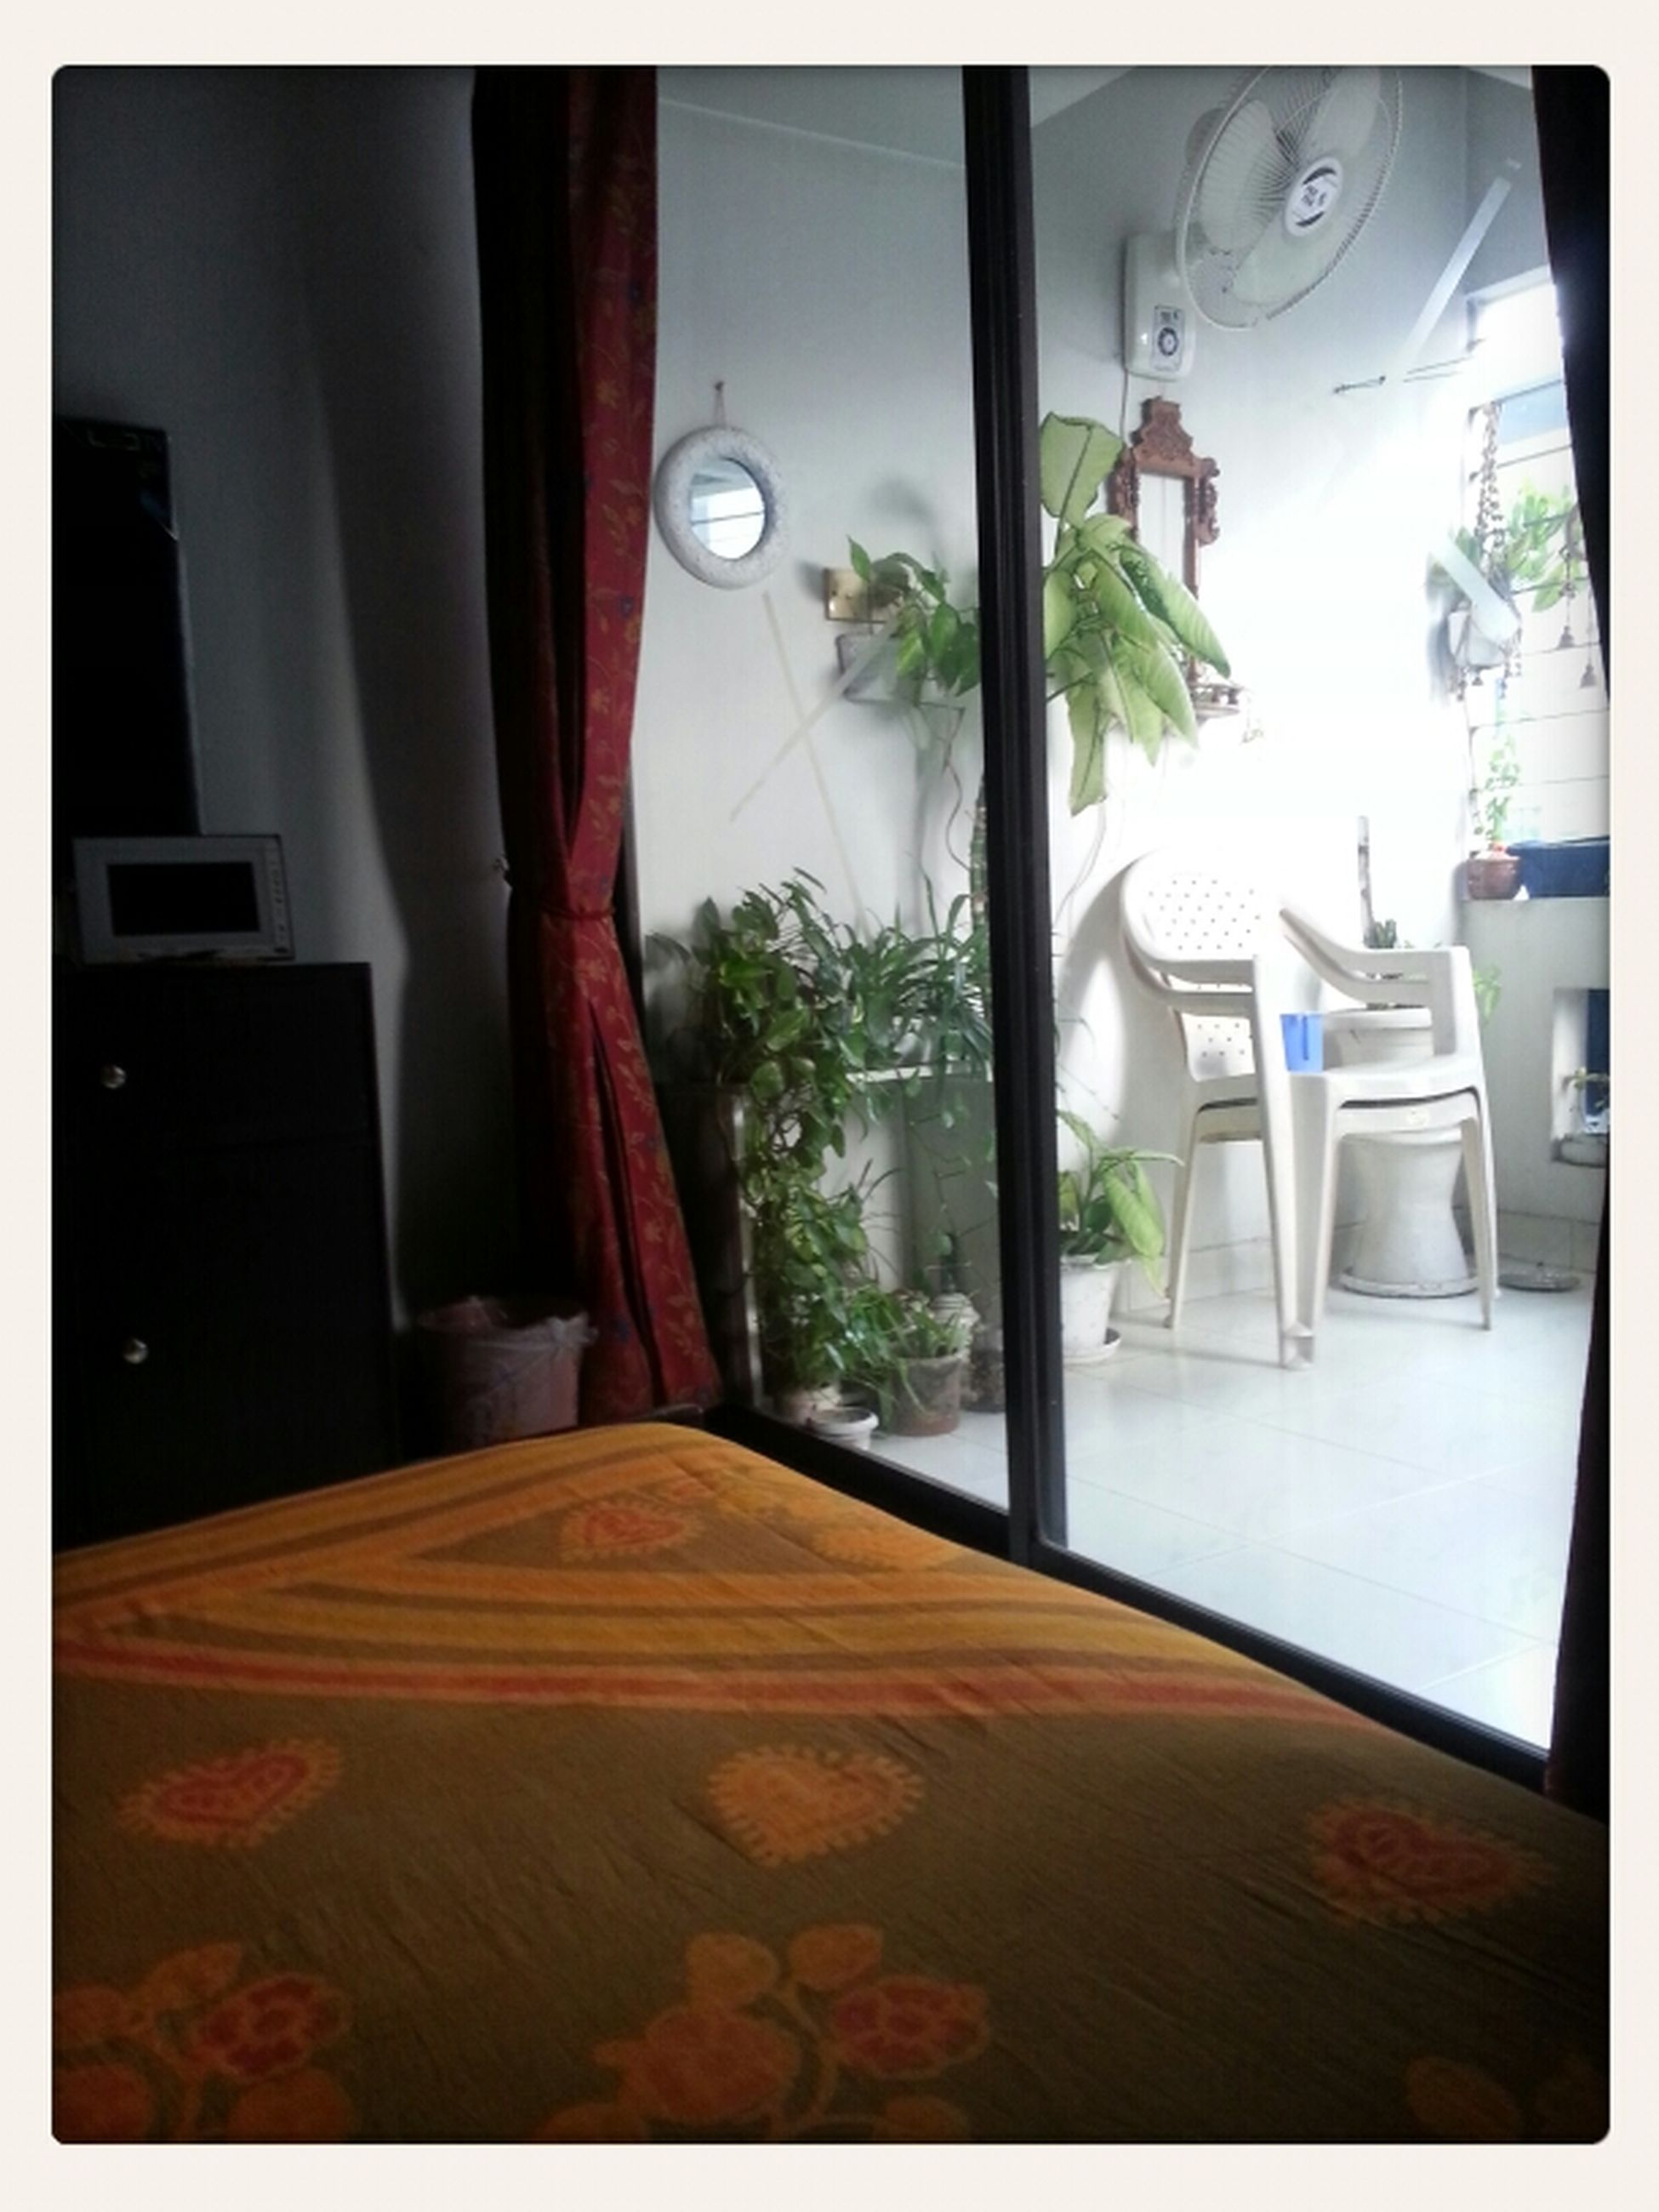 indoors, transfer print, auto post production filter, table, home interior, absence, chair, window, empty, flooring, tiled floor, no people, restaurant, sunlight, glass - material, potted plant, house, illuminated, lighting equipment, transparent